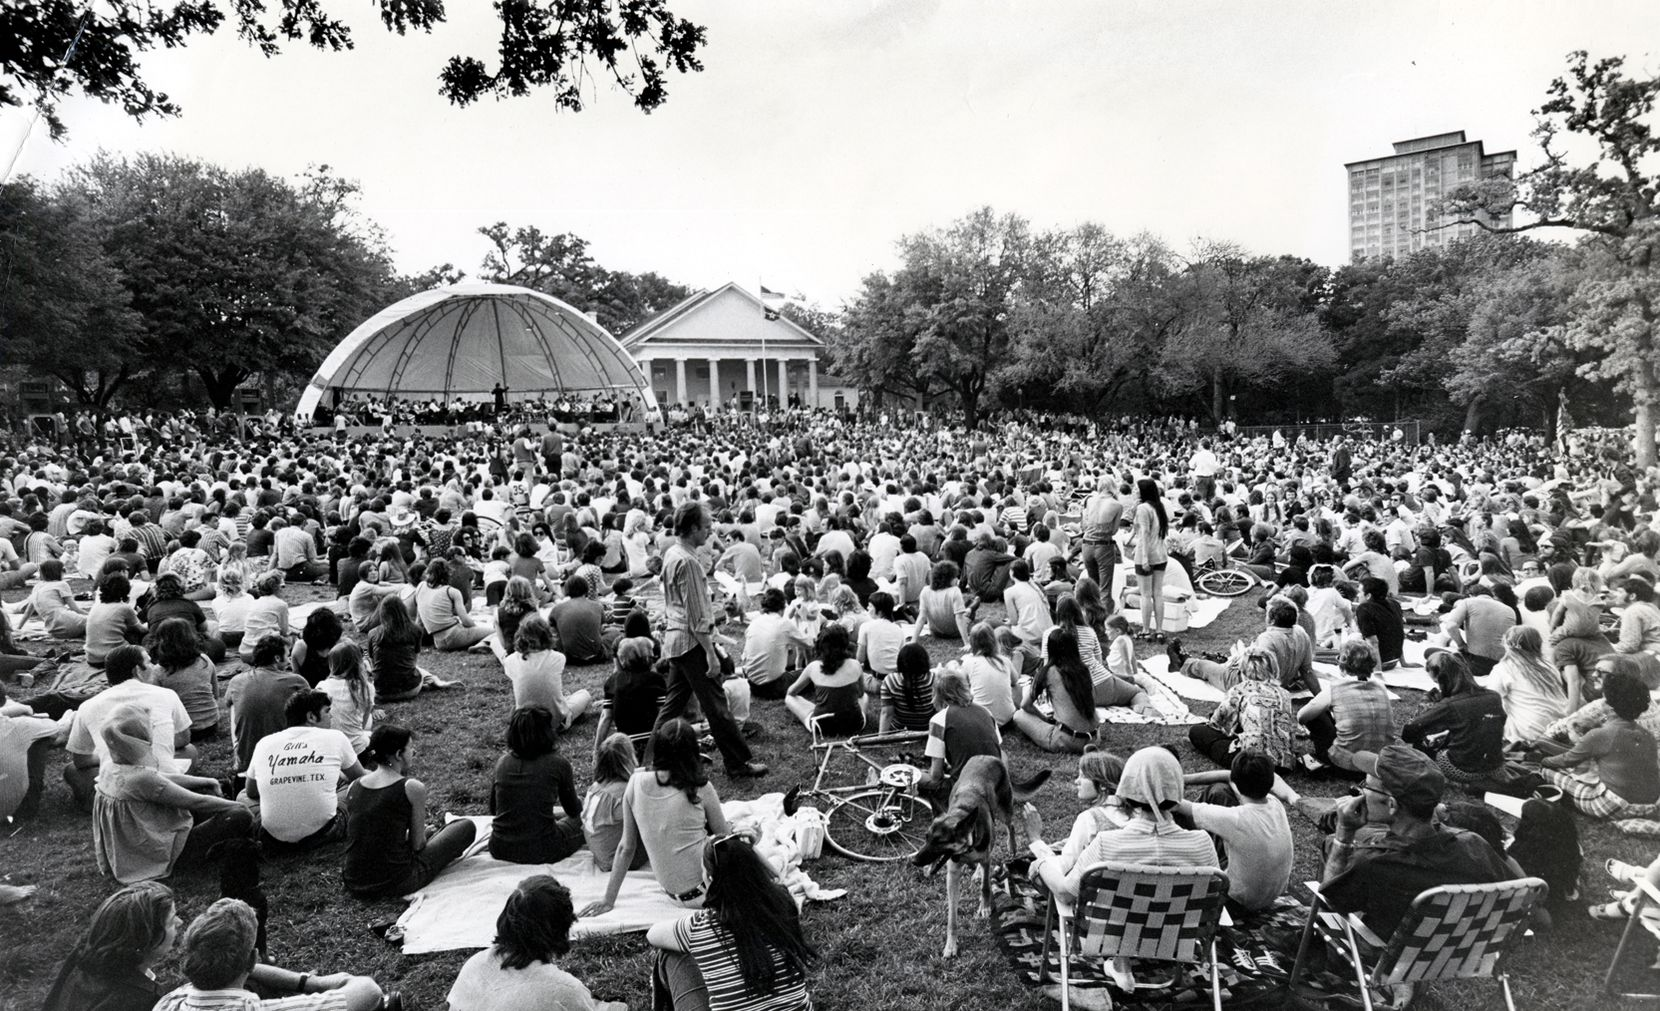 Fans packed Lee Park for the Dallas Symphony Orchestra's concert on Easter Sunday in April 1972.